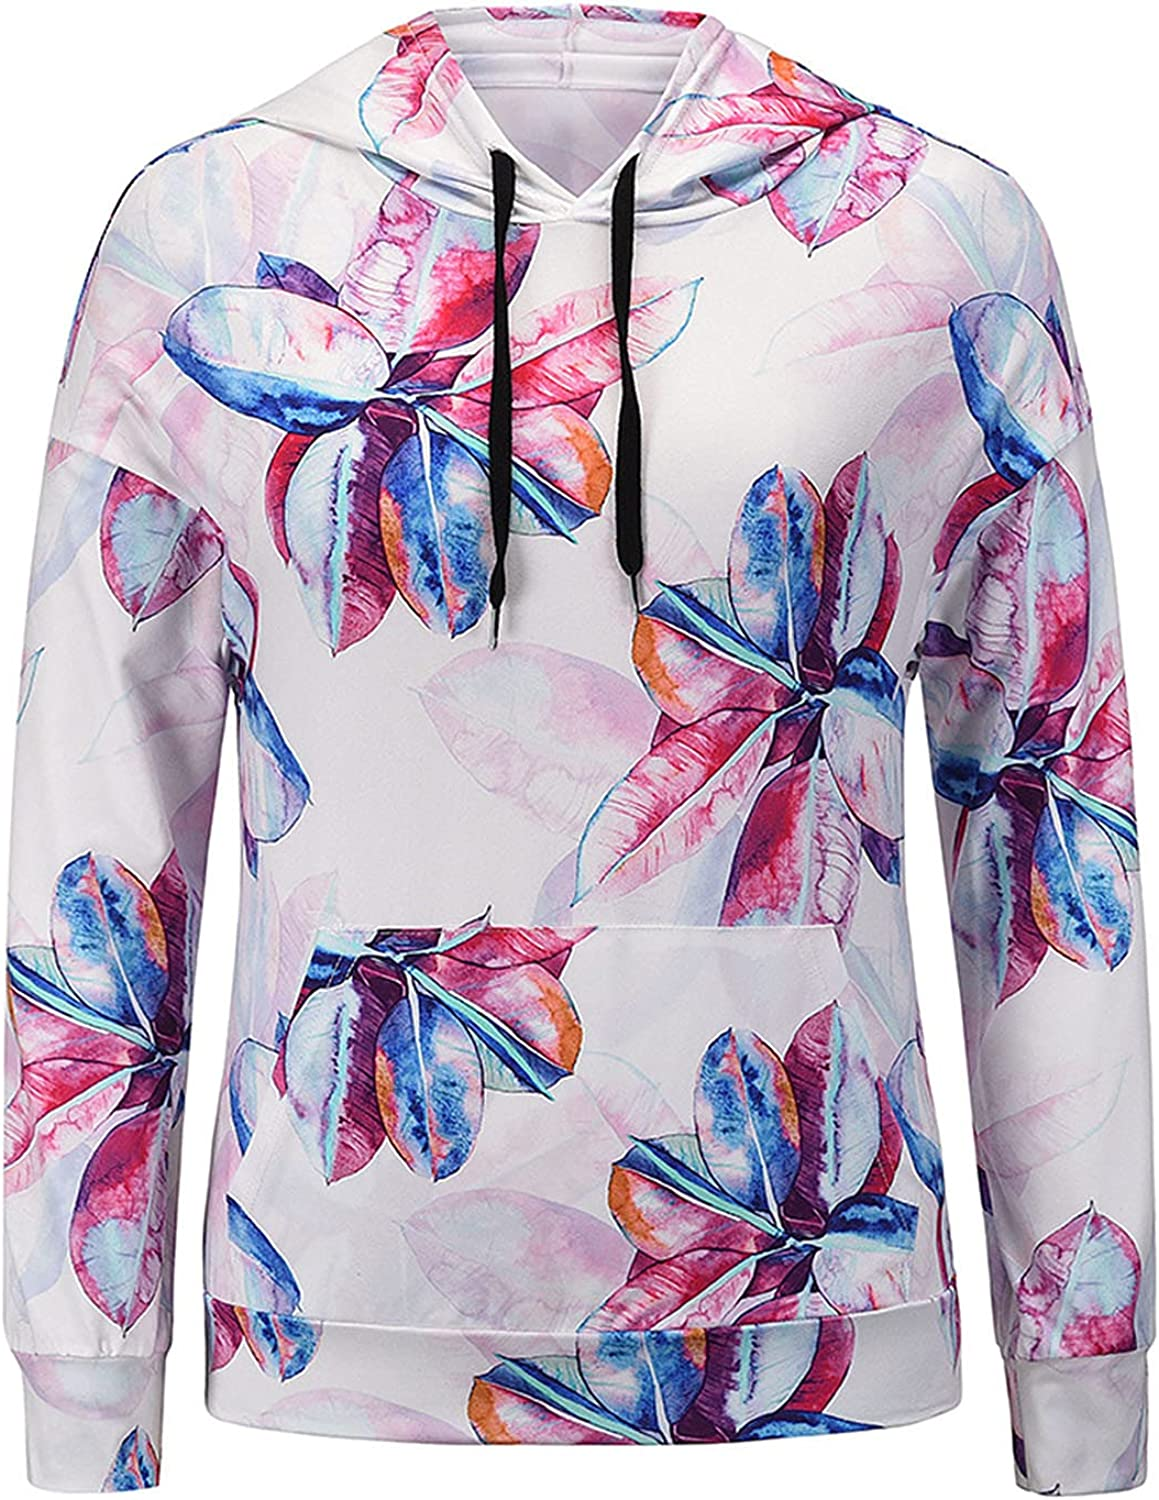 Womens Hoodies Tops Floral Print Long Sleeve Drawstring Sweatshirt Loose Fit Pullover Casual Blouse Soft Comfy Shirts